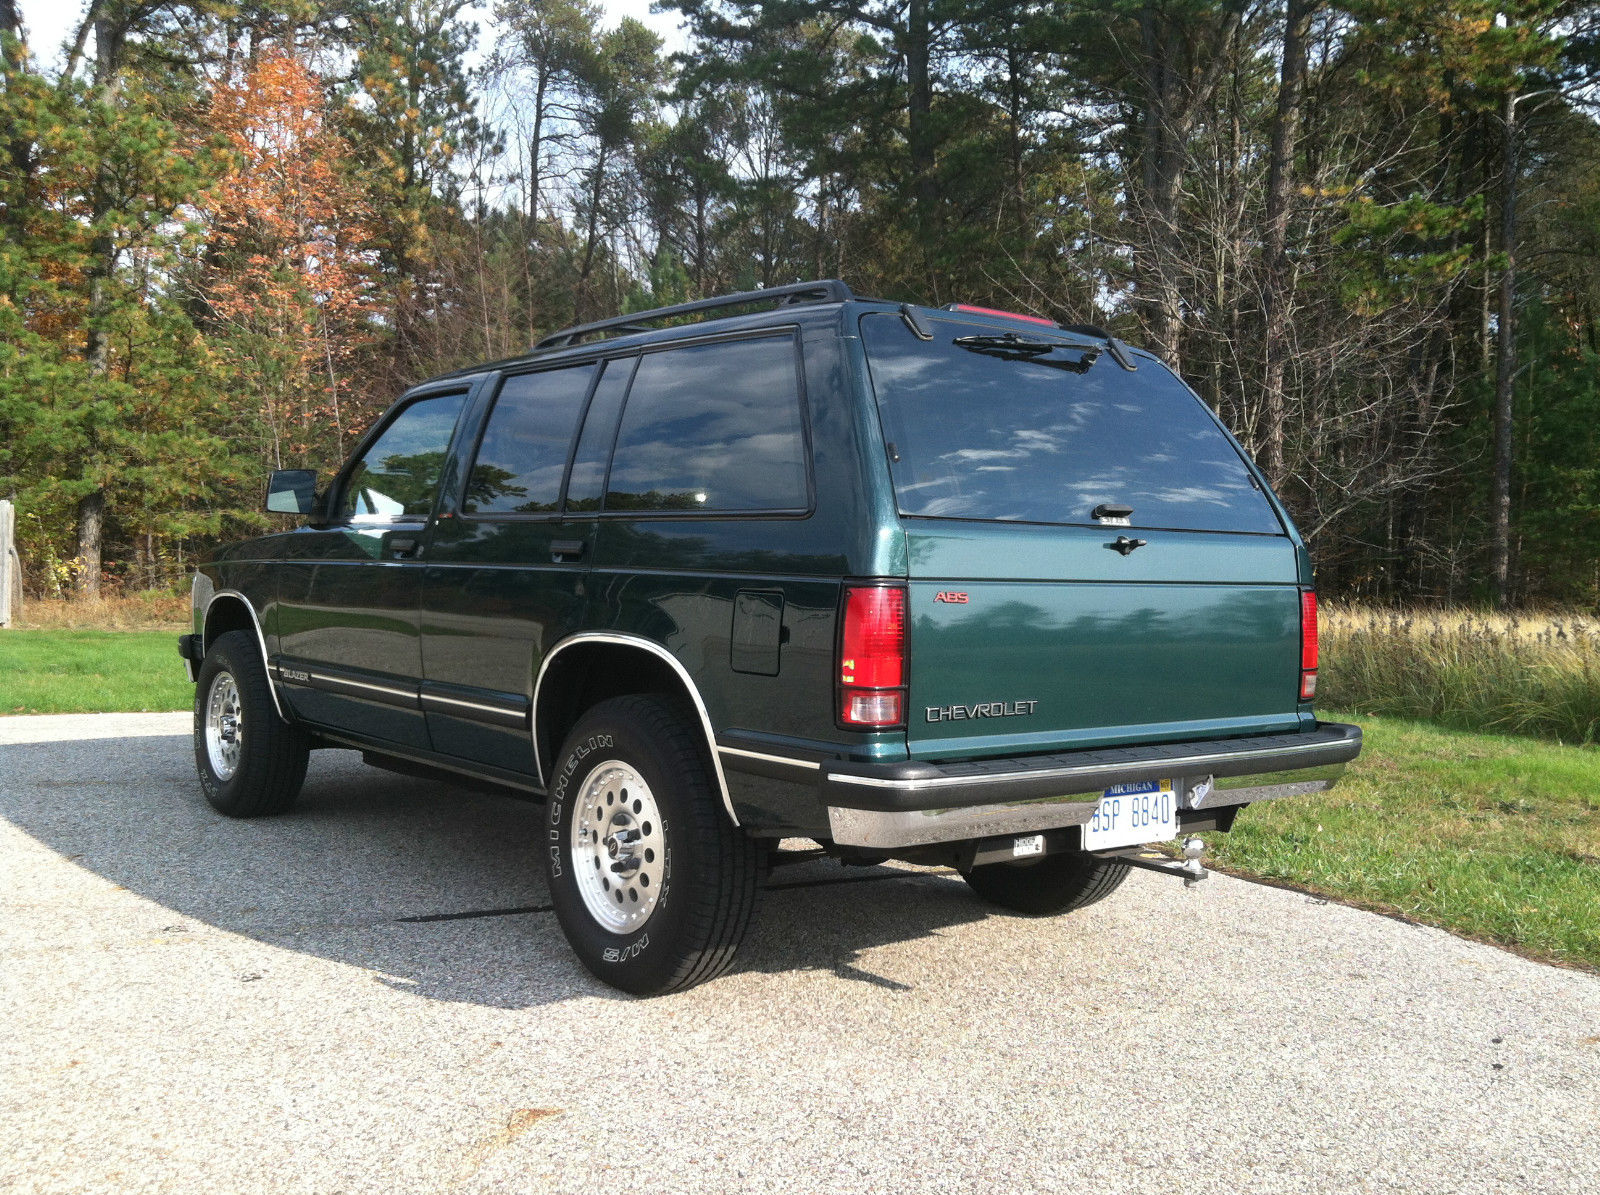 1994 chevrolet 4dr 4wd s10 blazer tahoe trim family owned grocery getter for sale in grand. Black Bedroom Furniture Sets. Home Design Ideas